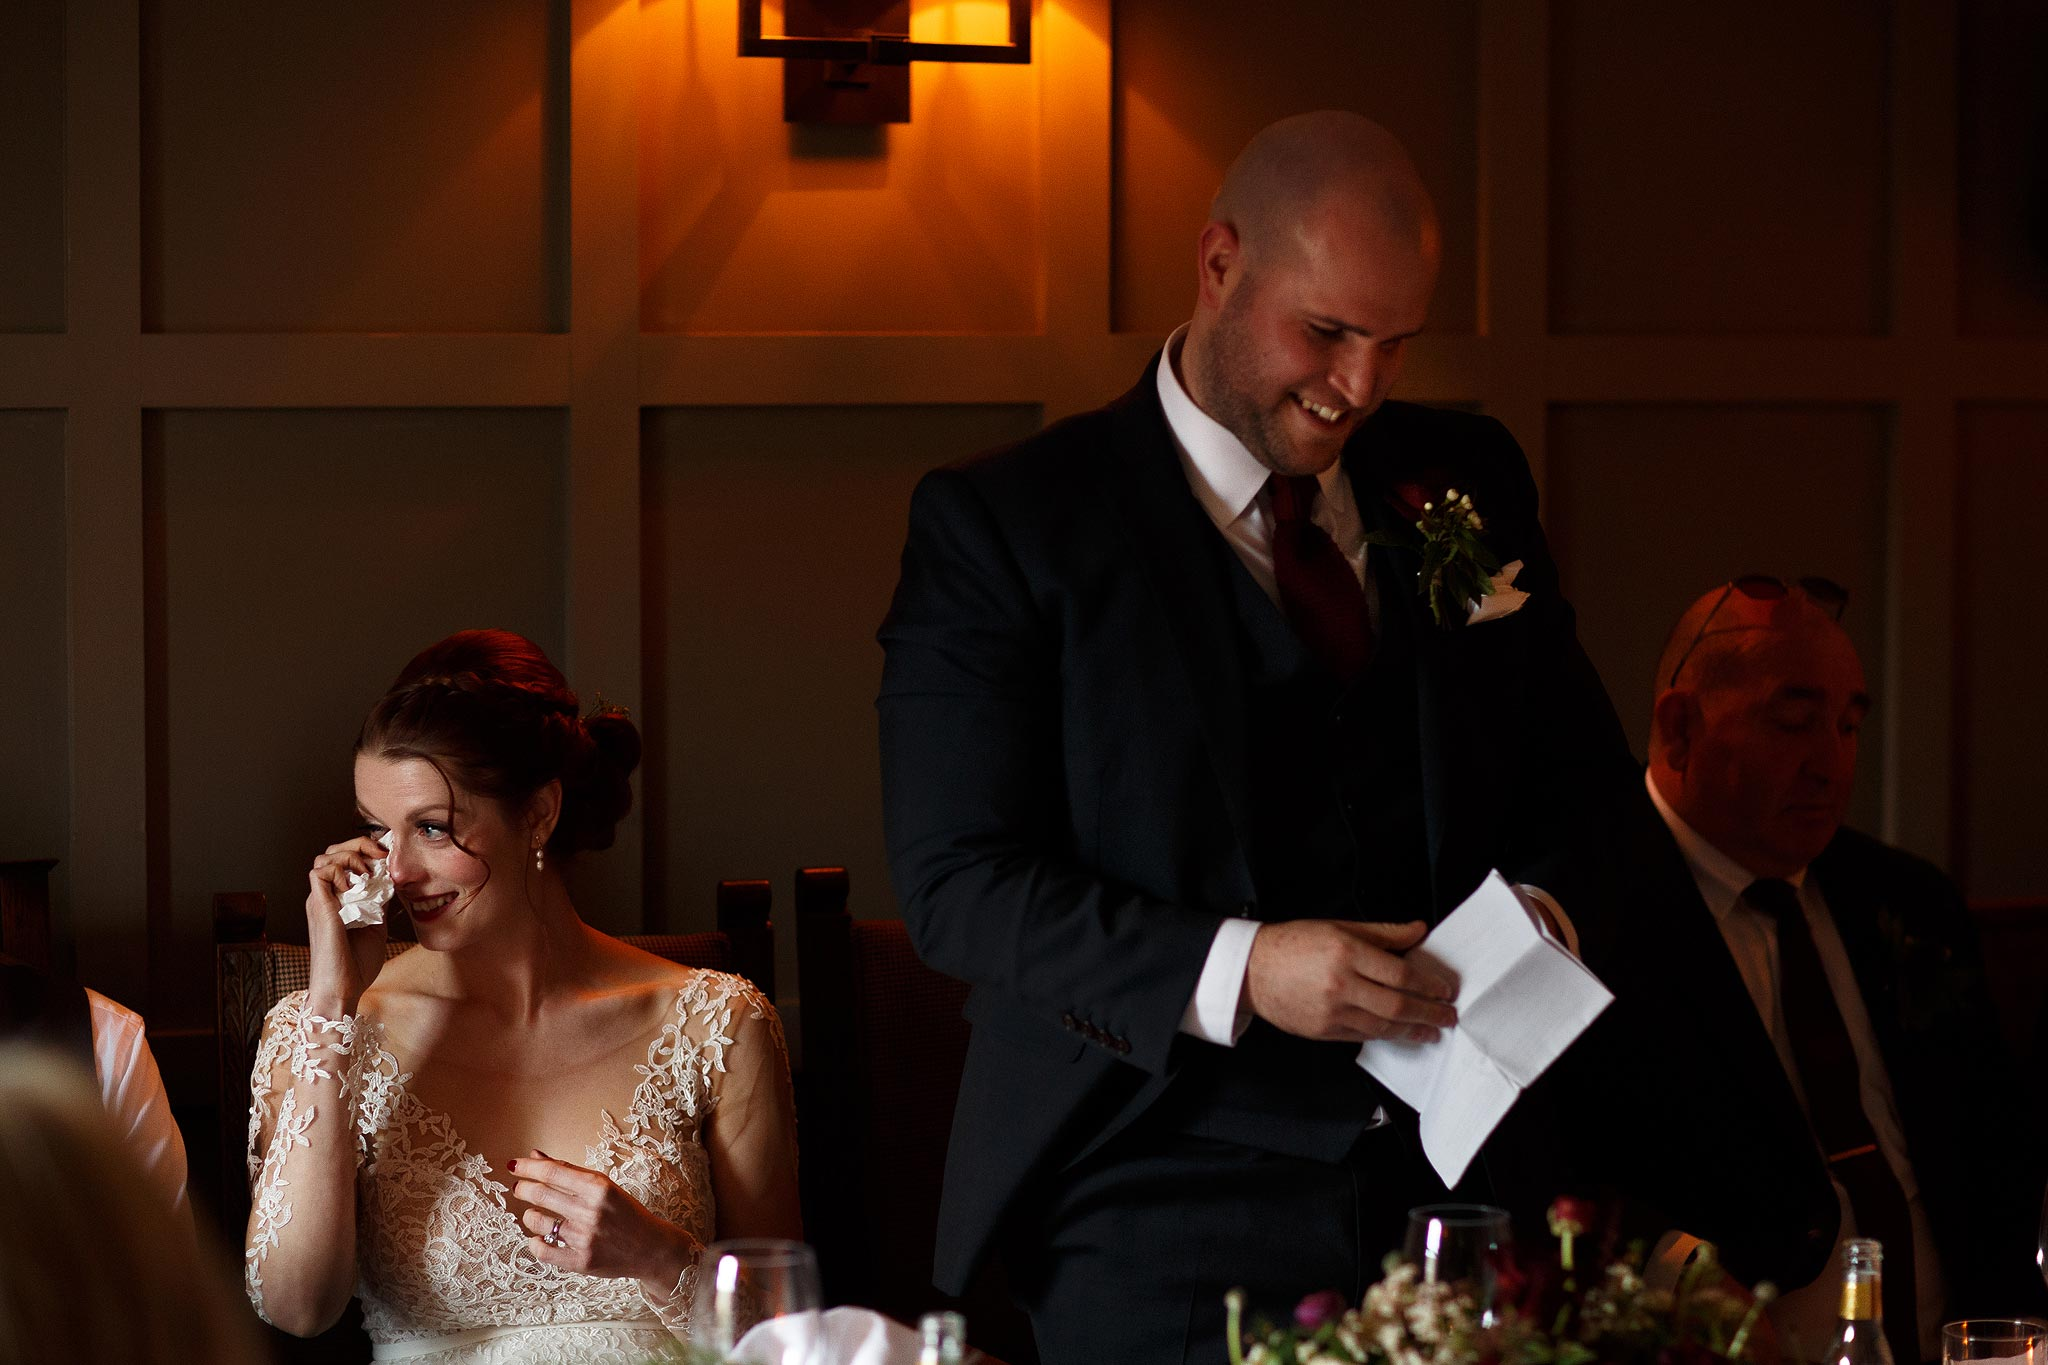 Groom making a speech during his wedding at the Assheton Arms